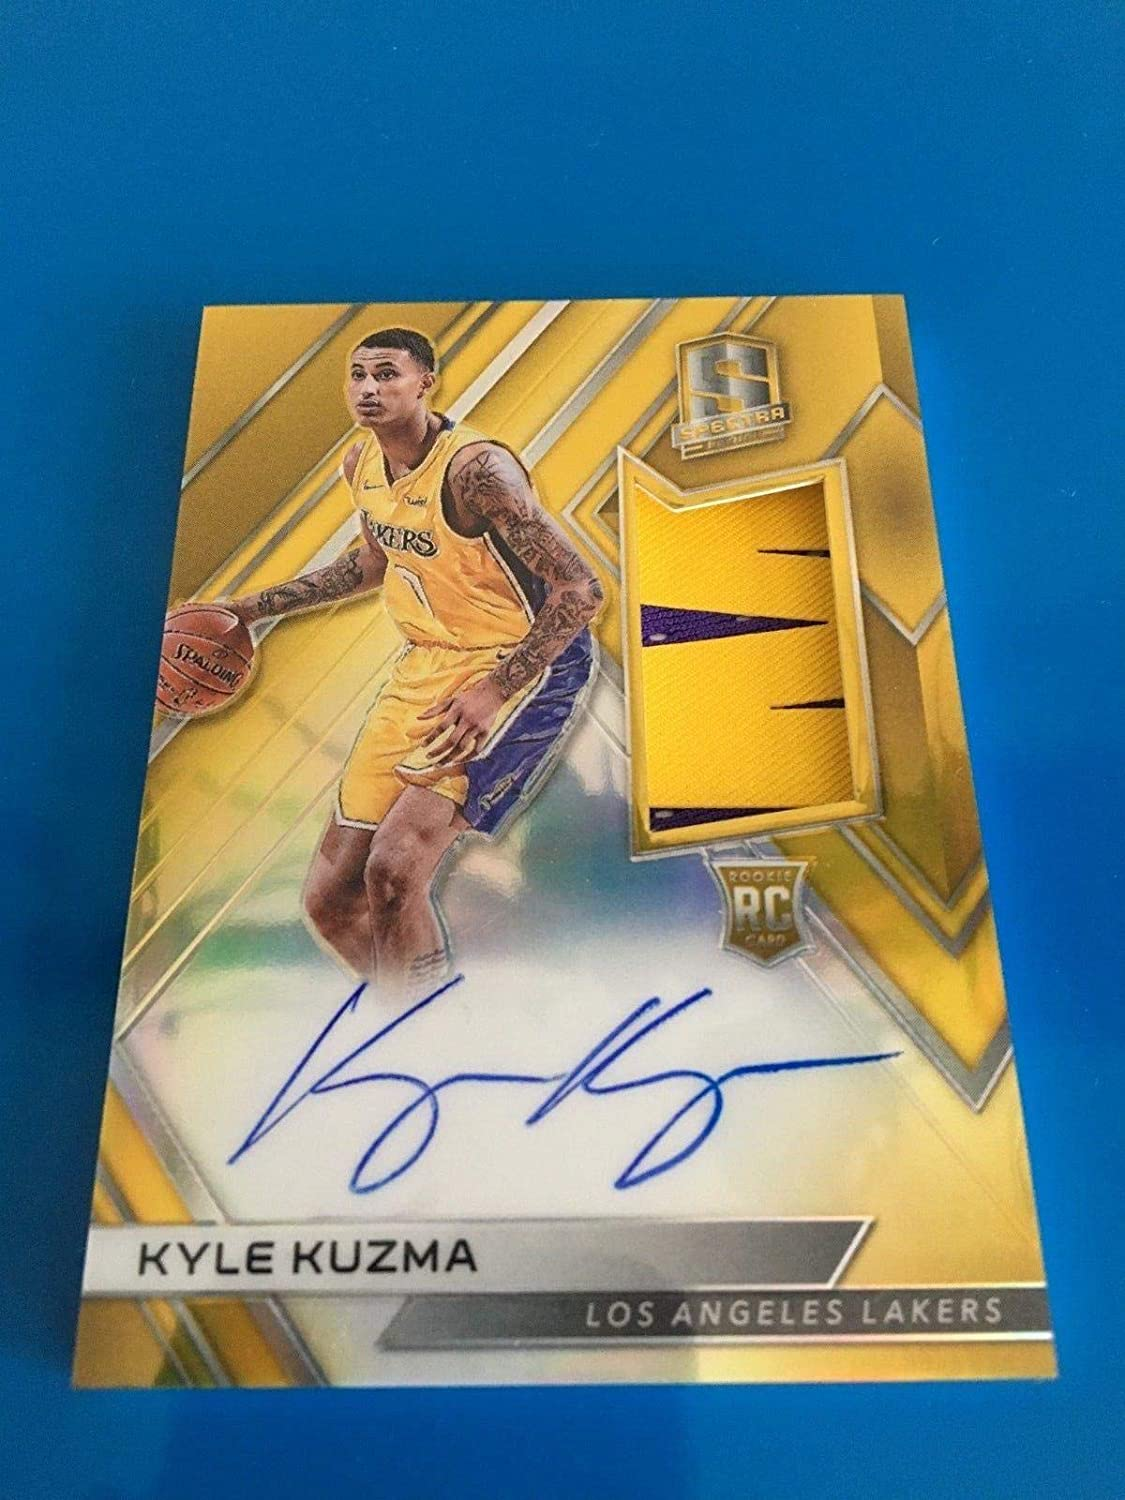 8b03d860c78 2017-18 Panini Spectra Kyle Kuzma GOLD AUTO PATCH /10 RPA RC Lakers Rookie  SP - Panini Certified - Basketball Autographed Game Used Cards at Amazon's  Sports ...